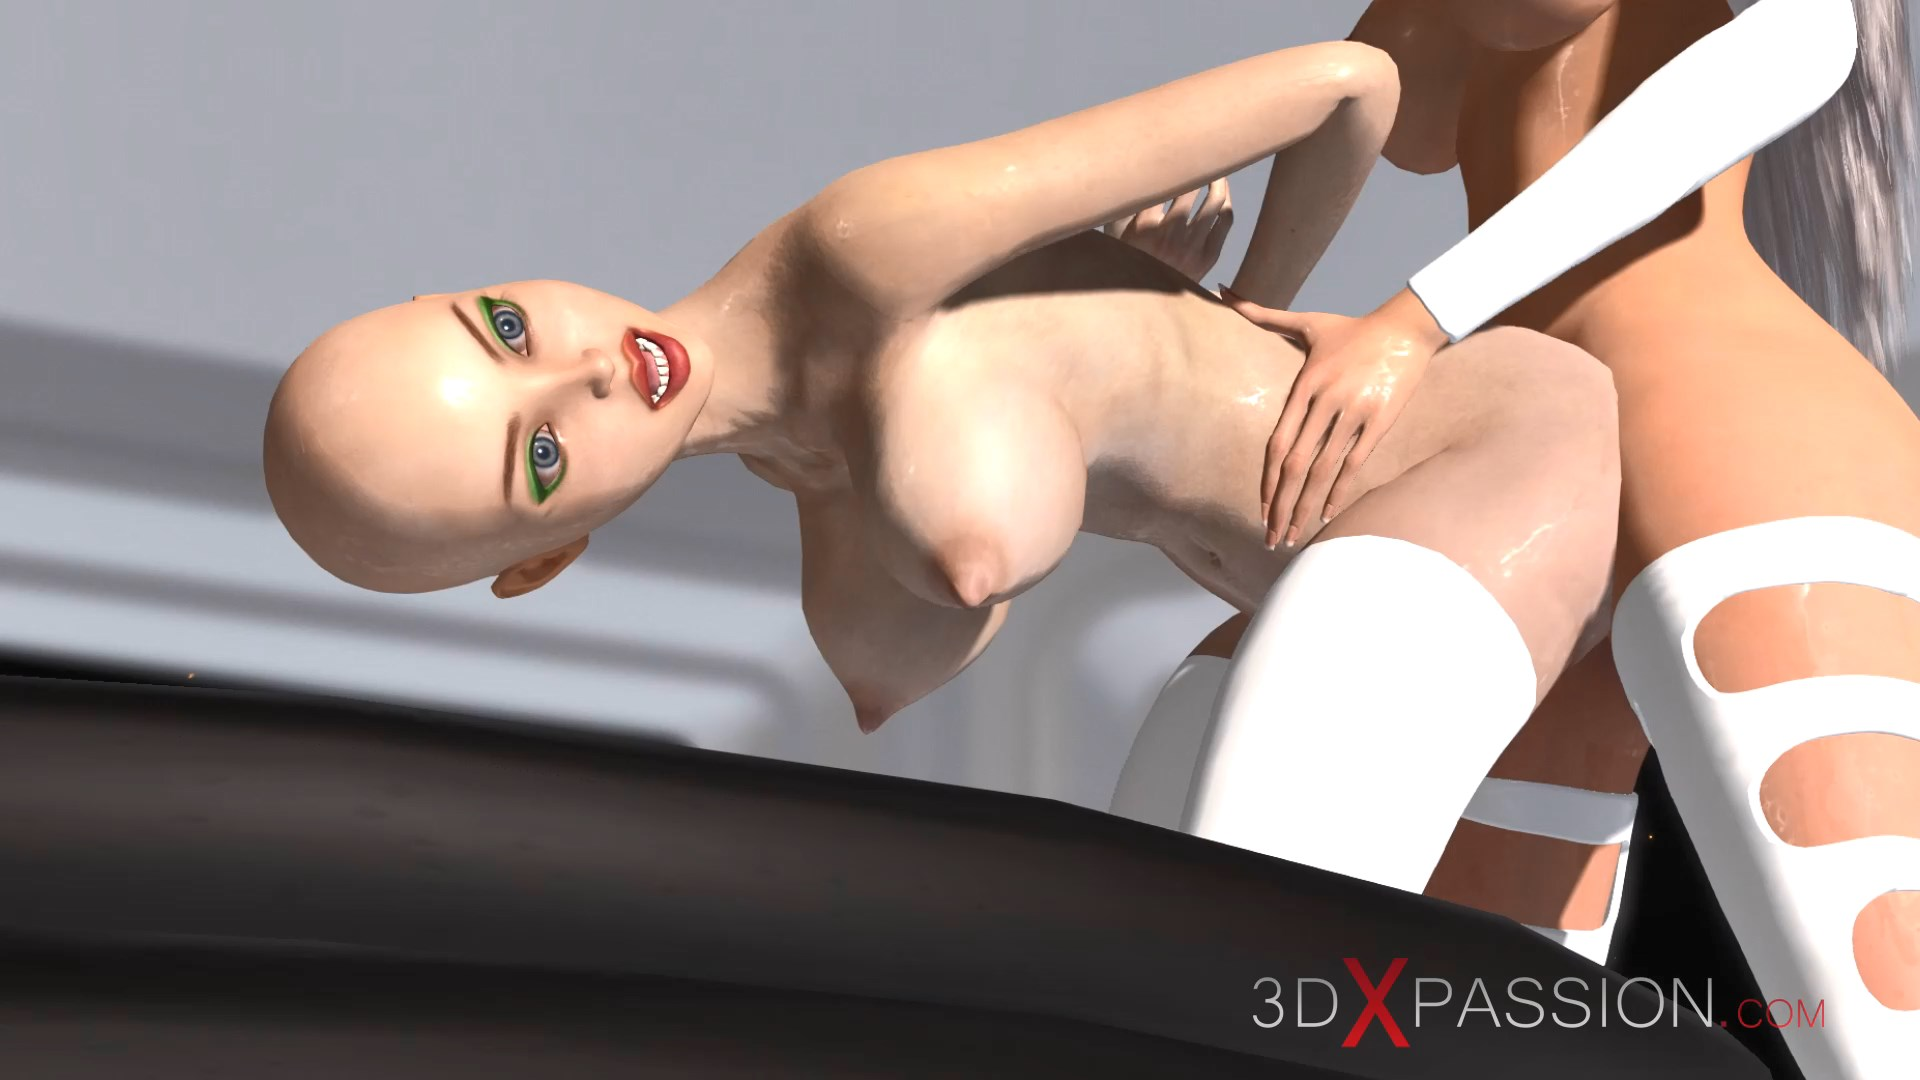 3d hot alien dickgirl doggystyle sexy girl space station